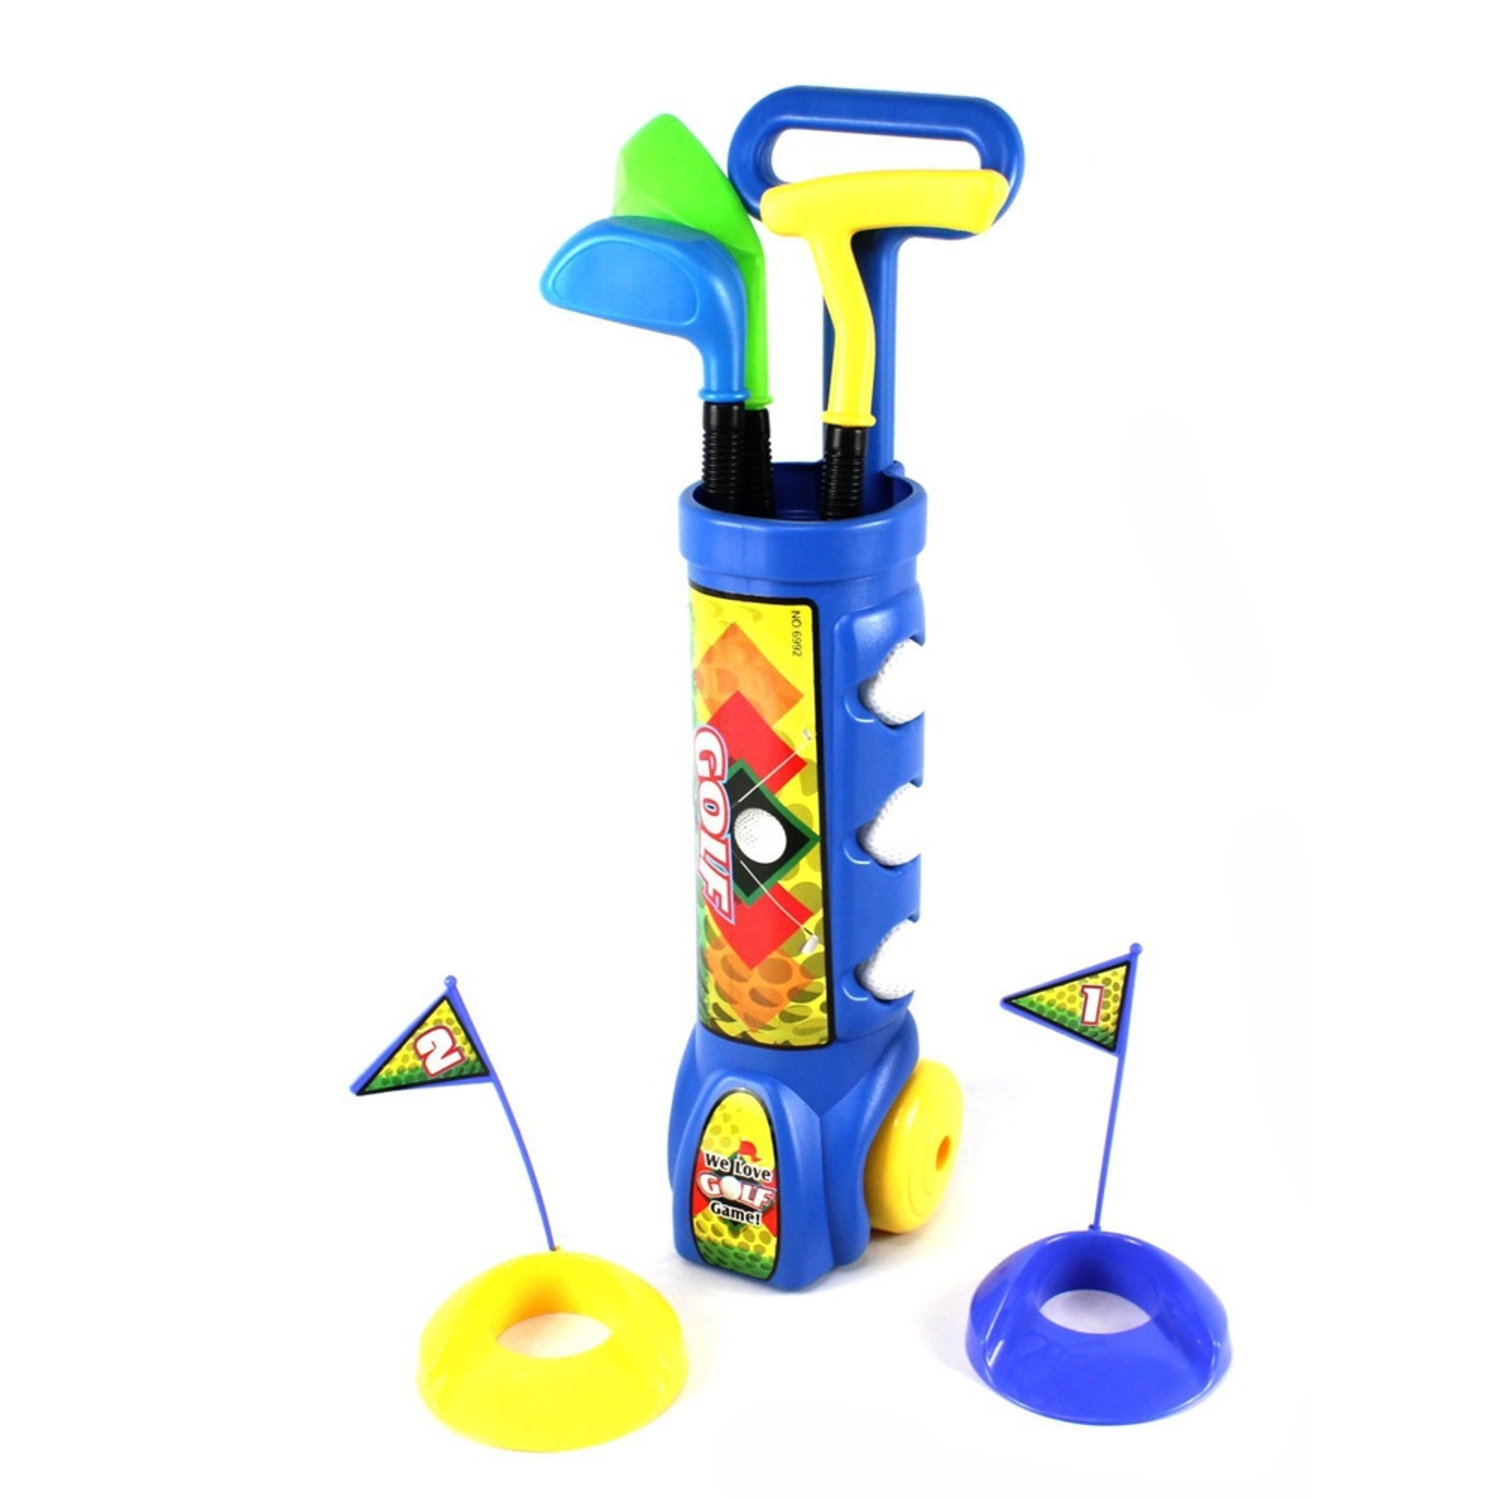 Kid's Golfer Toy Golf Set w  3 Golf Balls, 3 Types of Clubs, 2 Practice Holes, Perfect... by